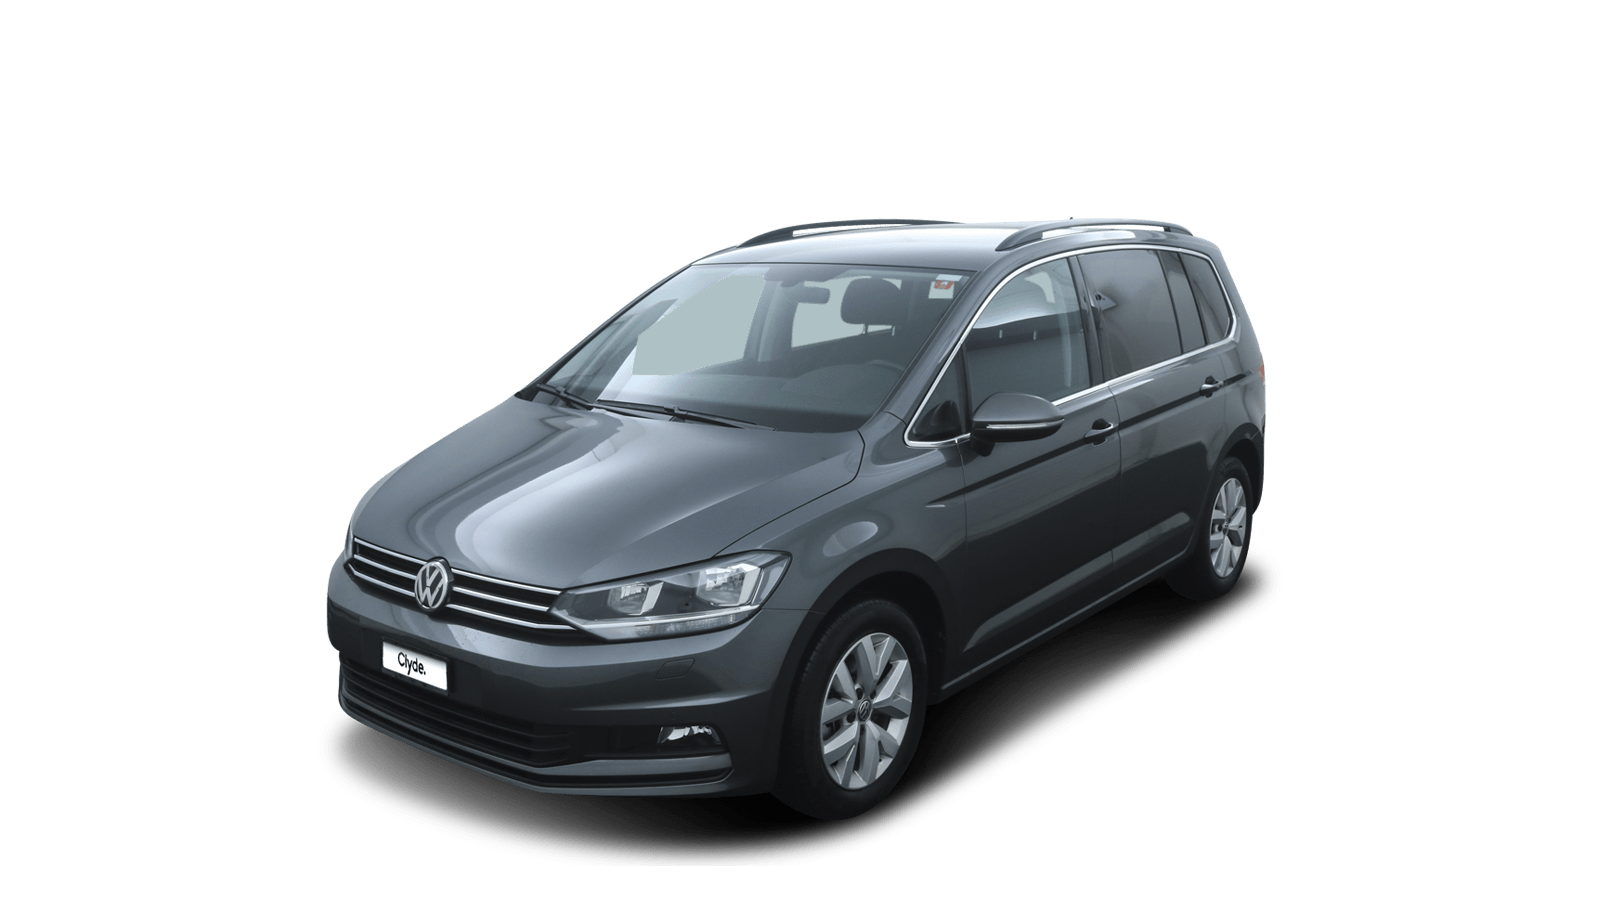 VW Touran Grey front - Clyde car subscription